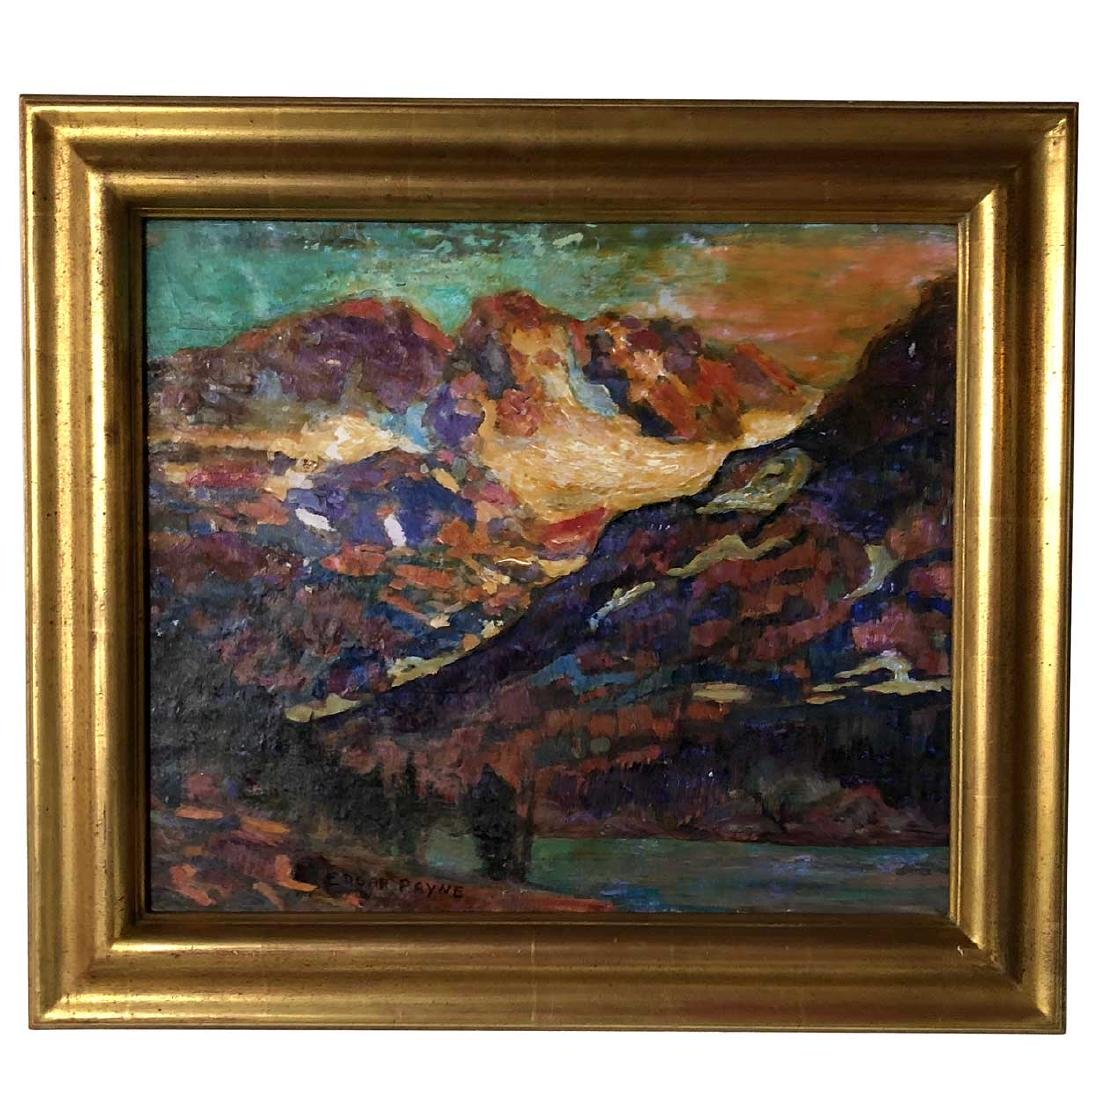 EDGAR ALWIN PAYNE Oil Painting, Sierra Mountain Lake